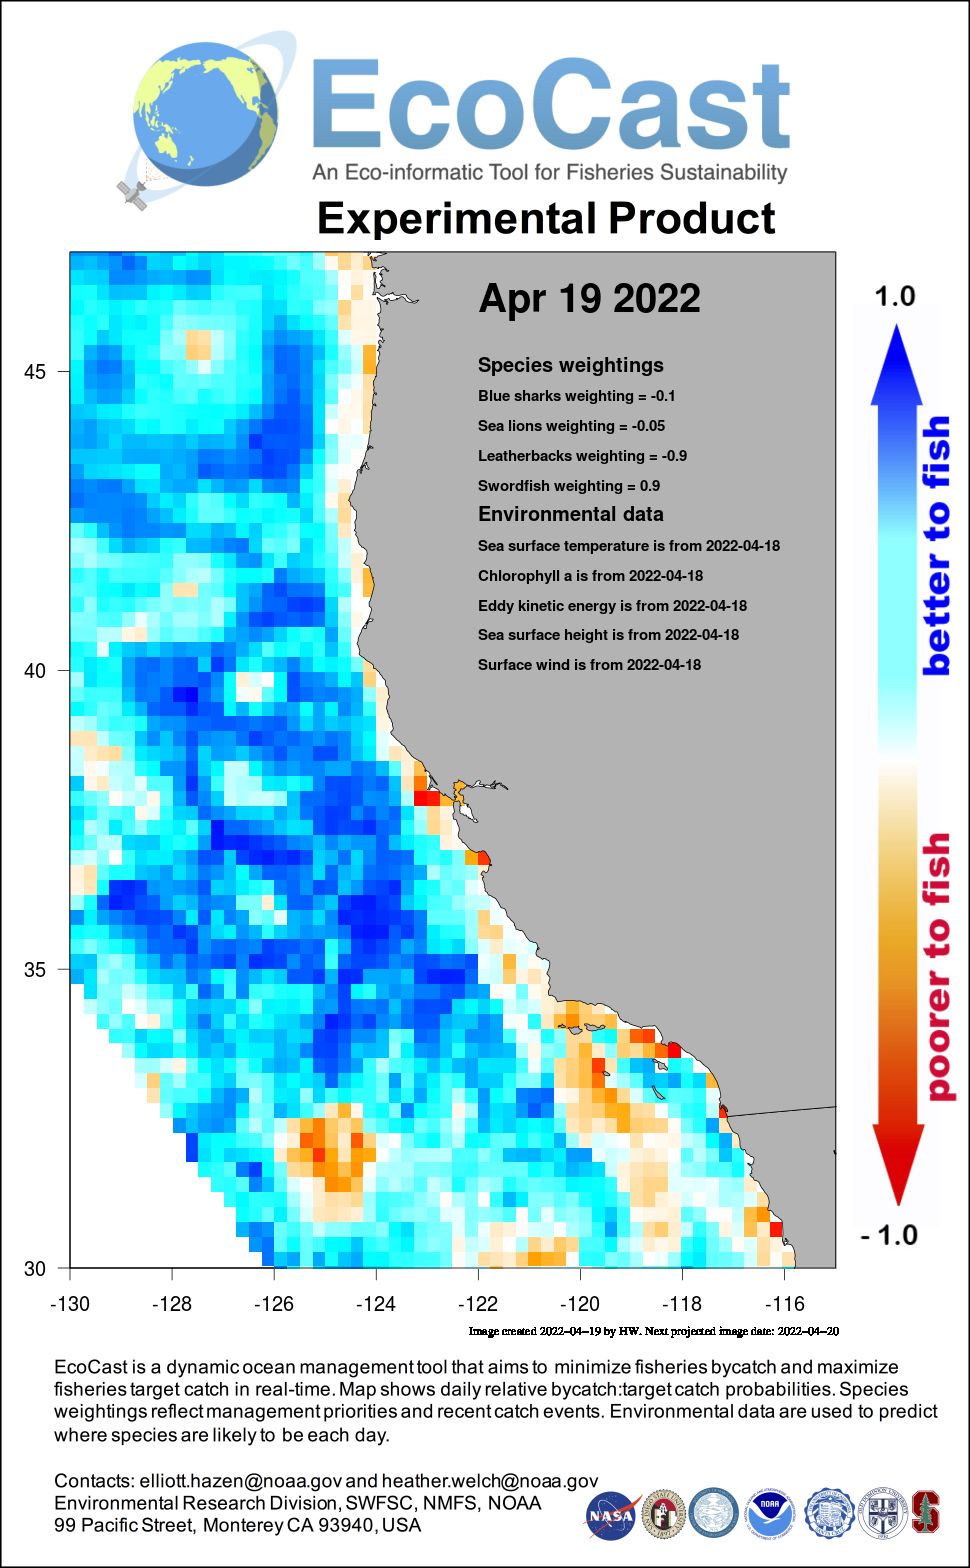 Mean sea surface temperature off Southern California - most recent